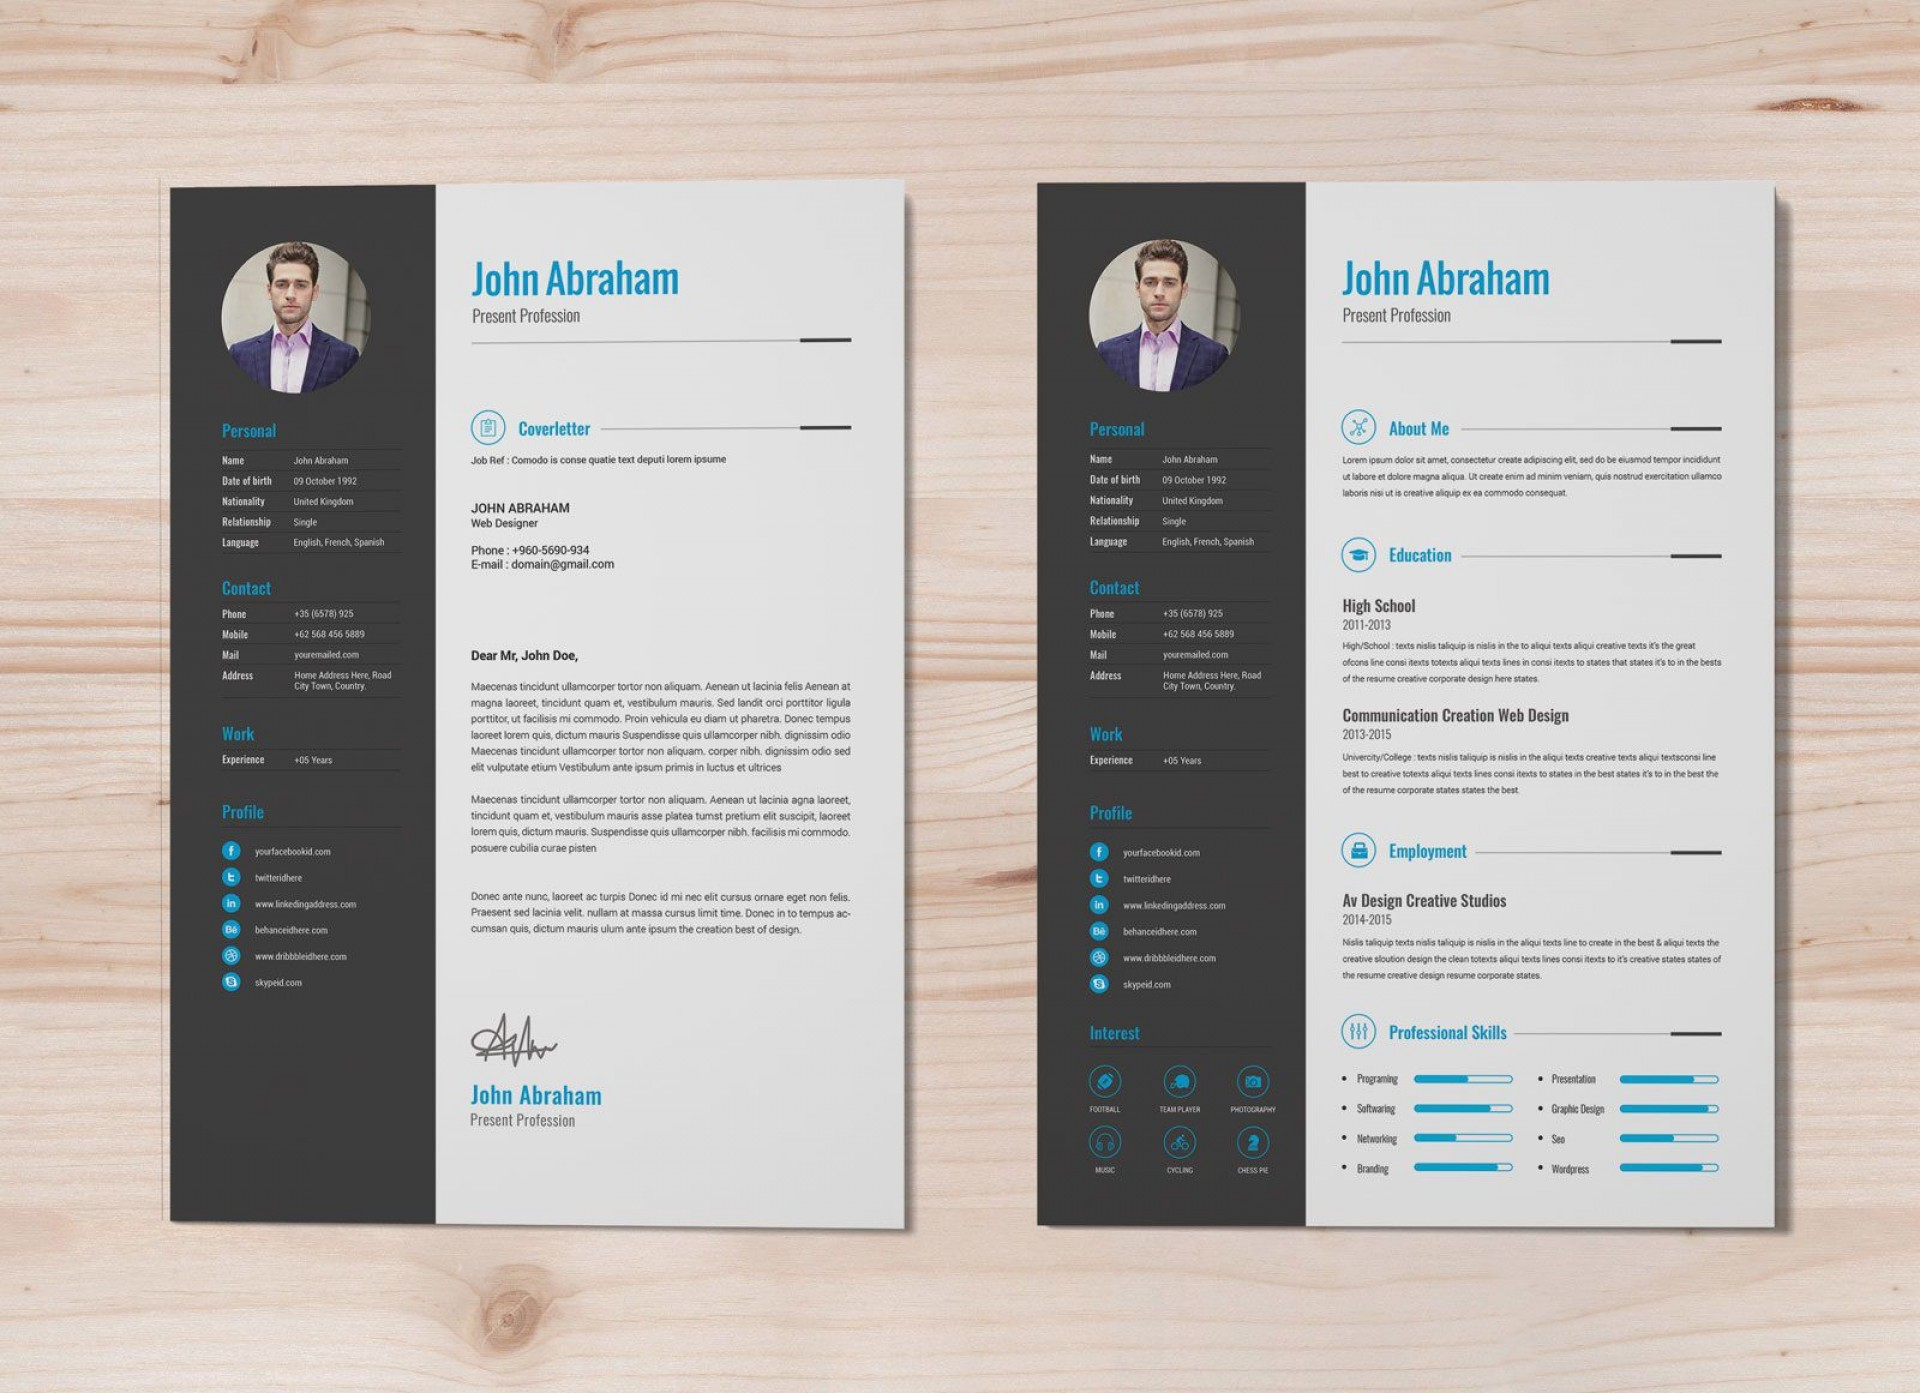 003 Astounding Professional Resume Template 2018 Free Download Inspiration 1920